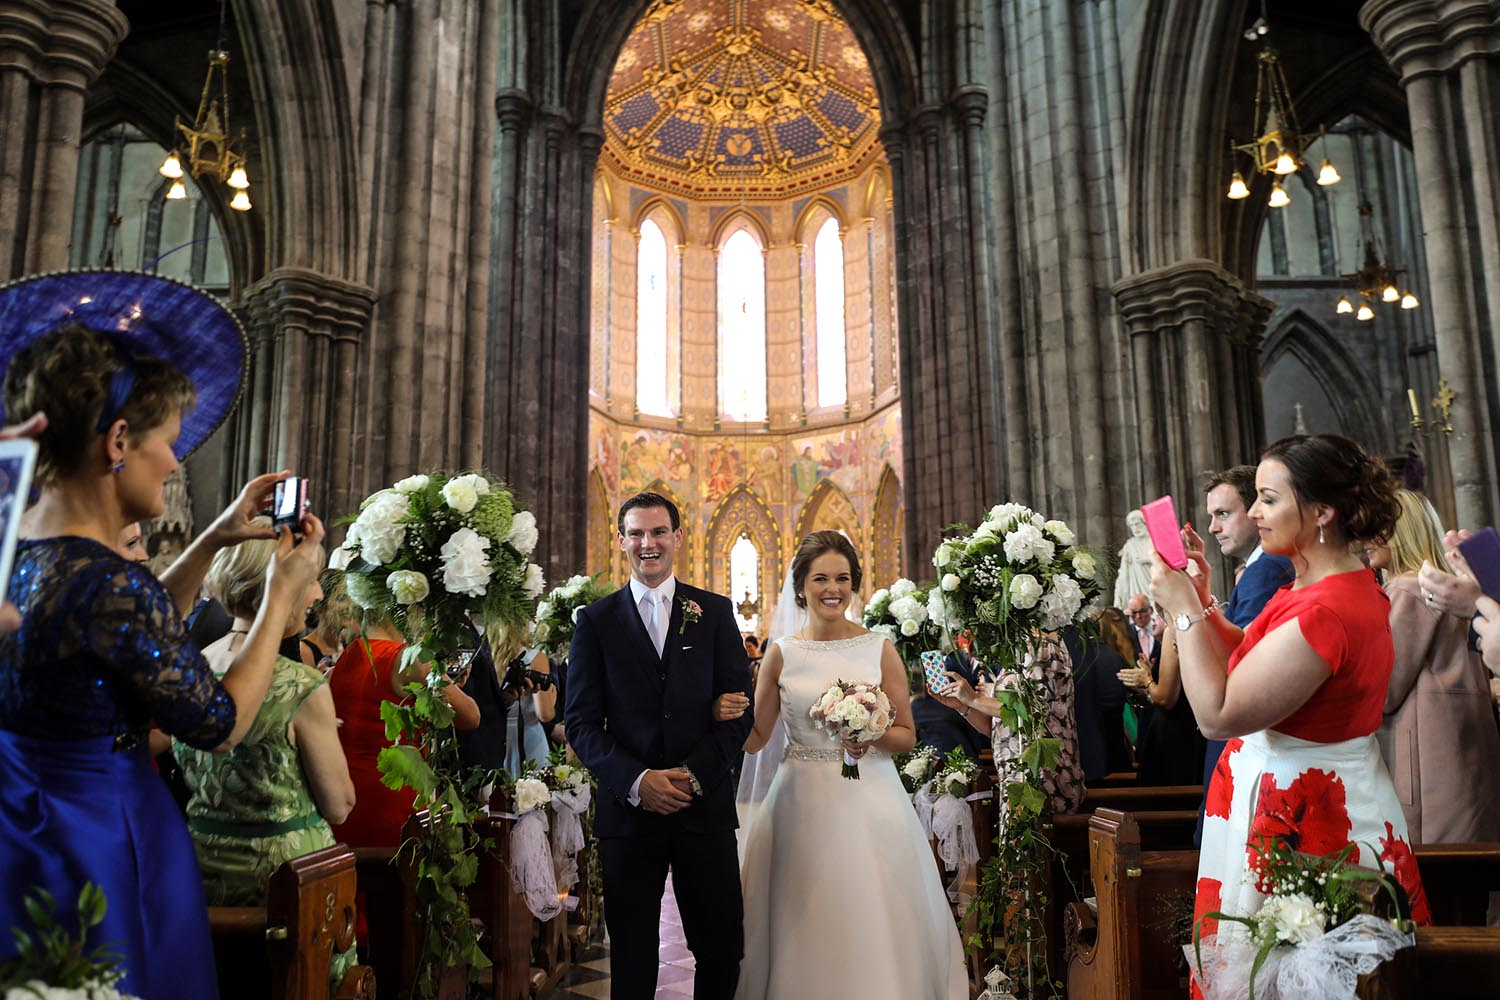 Married couple walk down the aisle at St Mary's Cathedral in Kilkenny